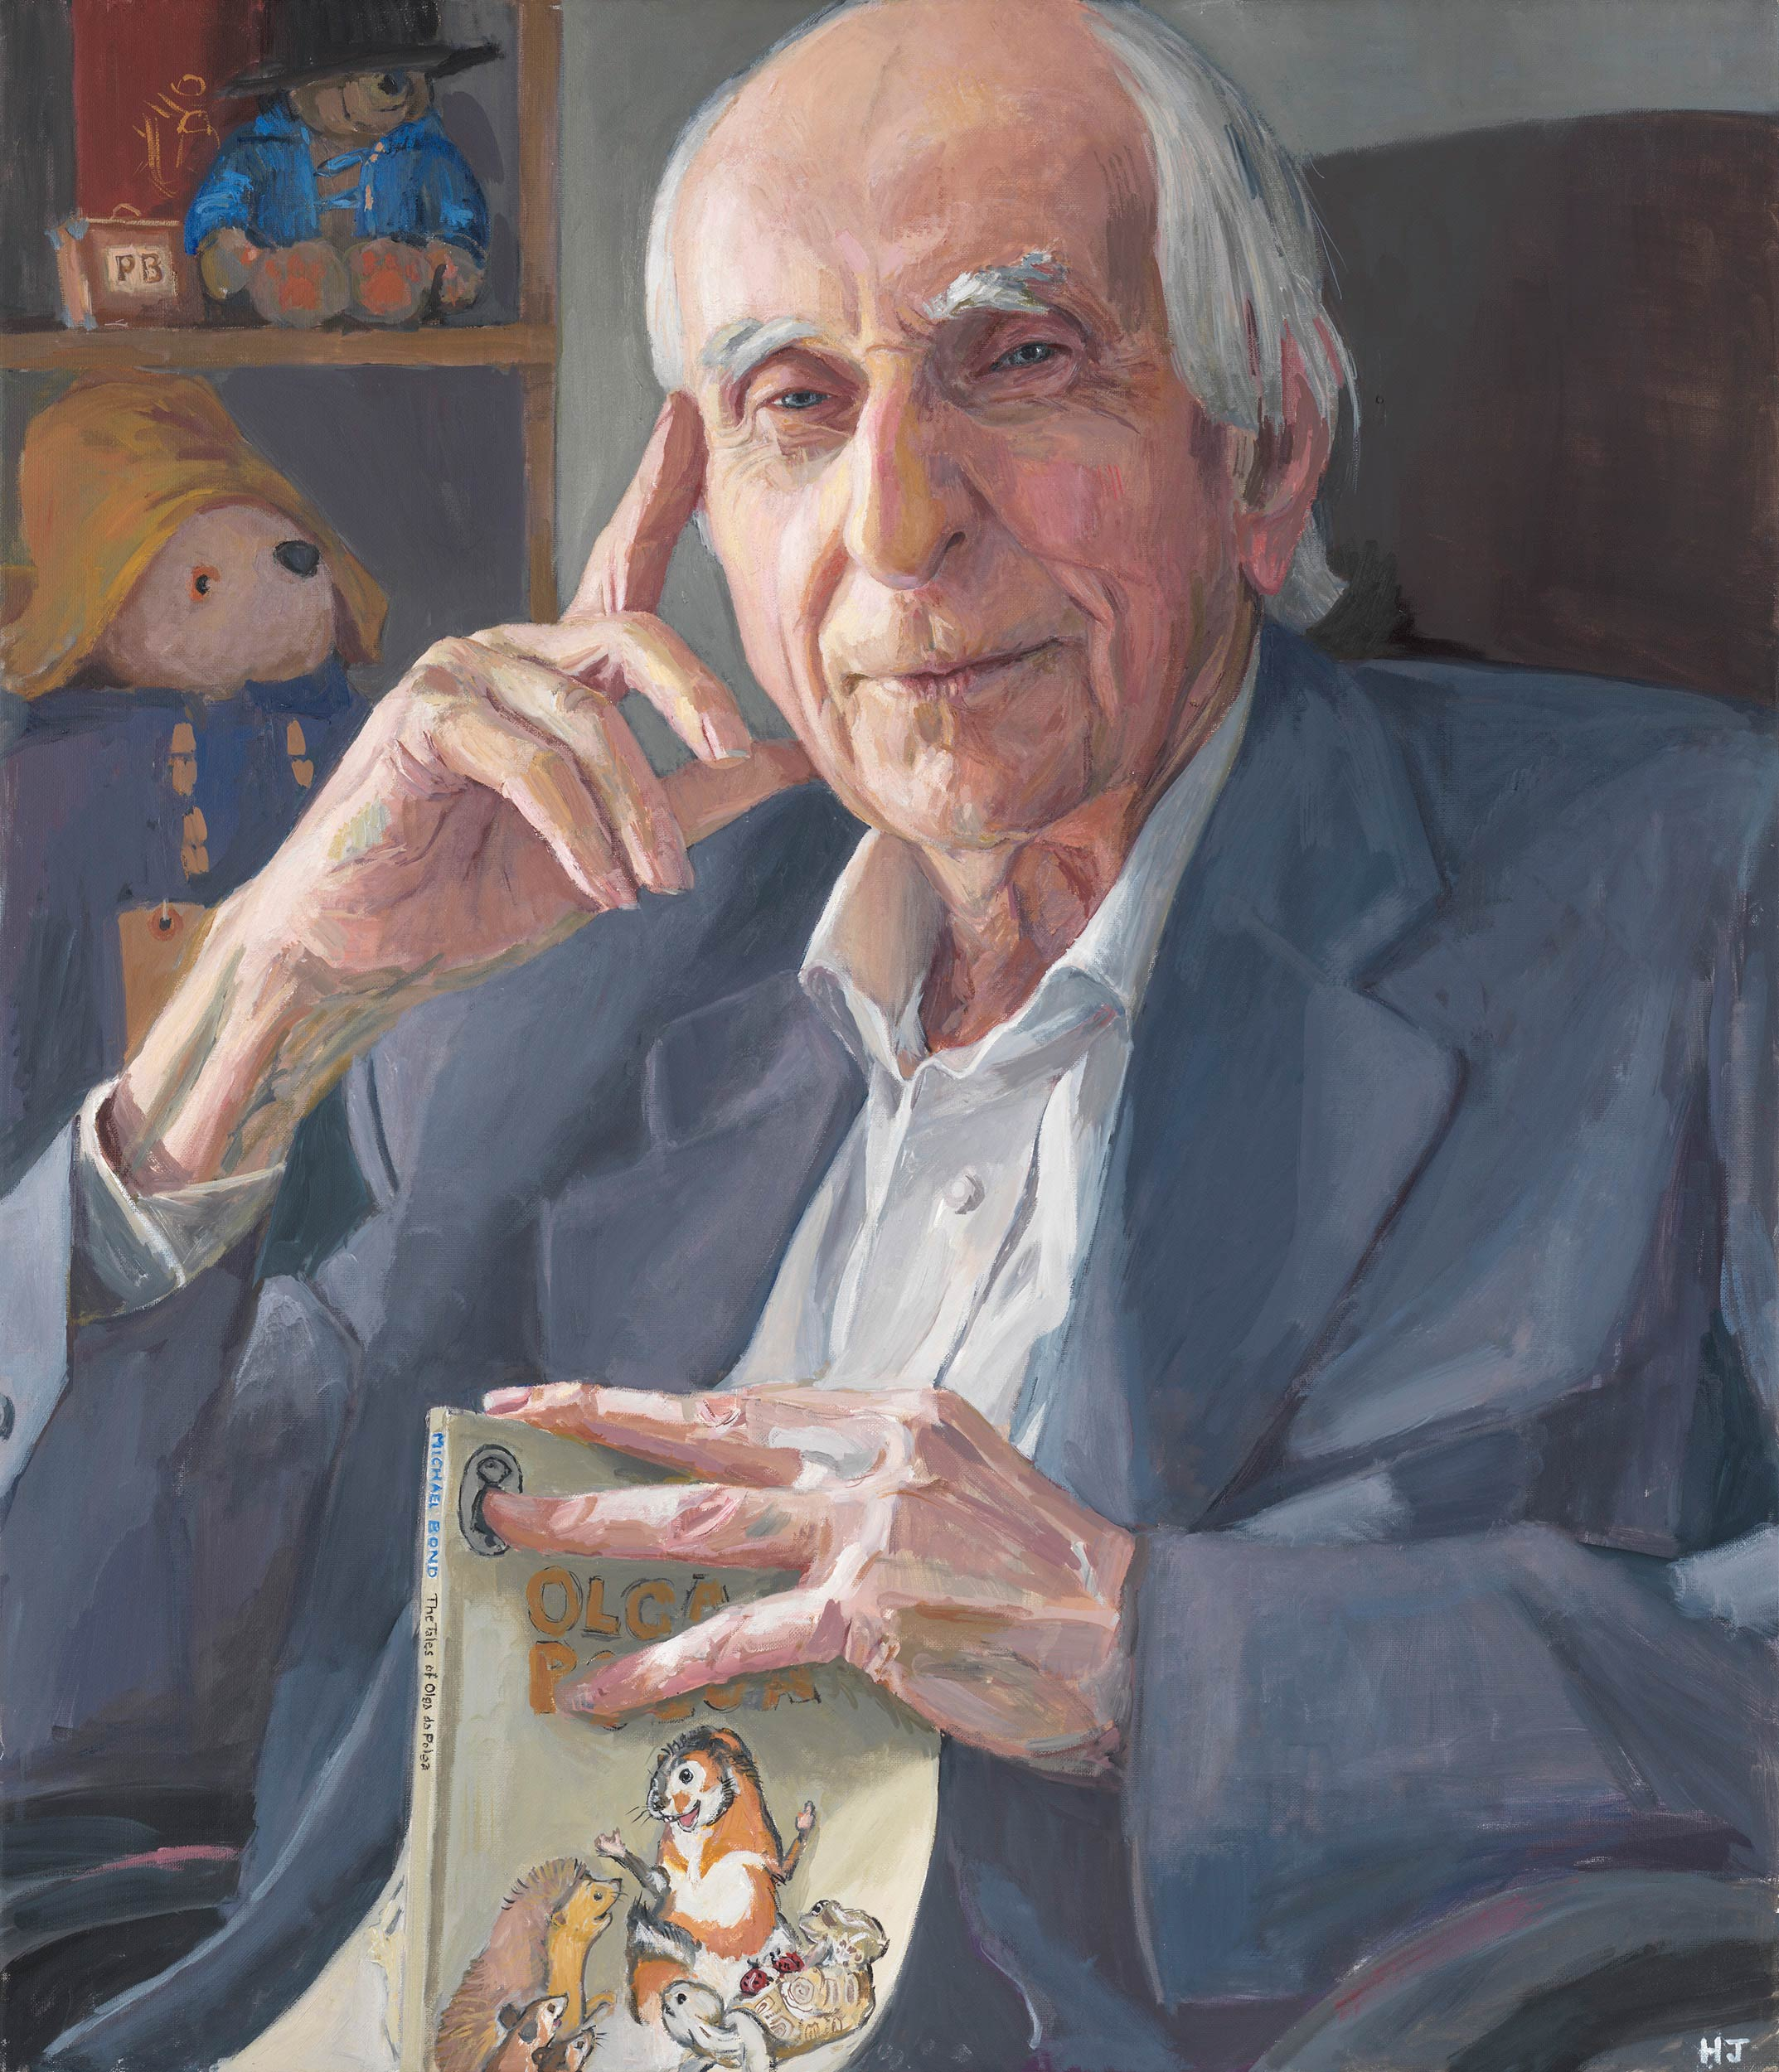 Michael Bond, creator of Paddinton Bear, painted by Hero Johnson